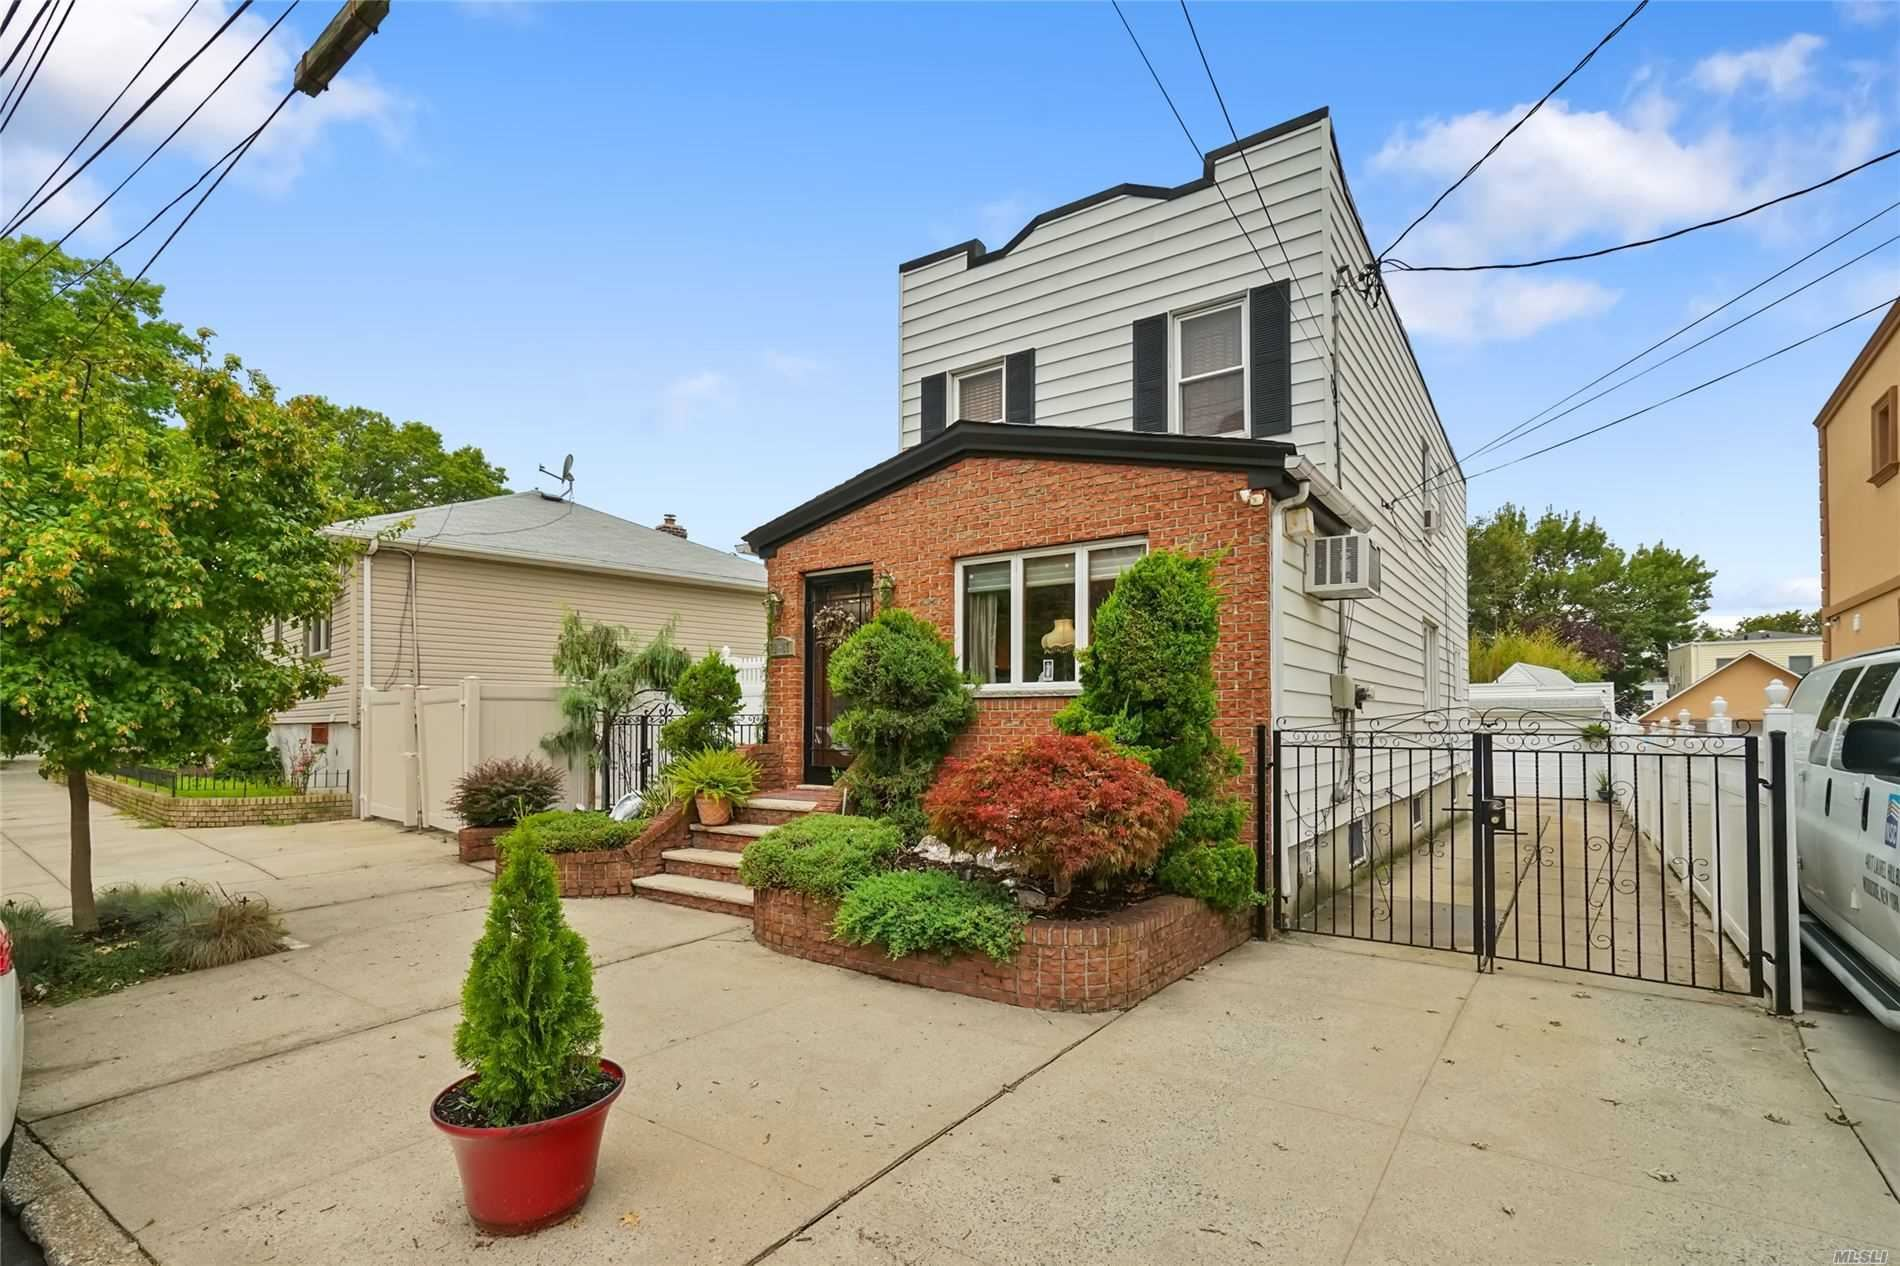 71-17 66 Drive, Middle Village, NY 11379 - MLS#: 3243286